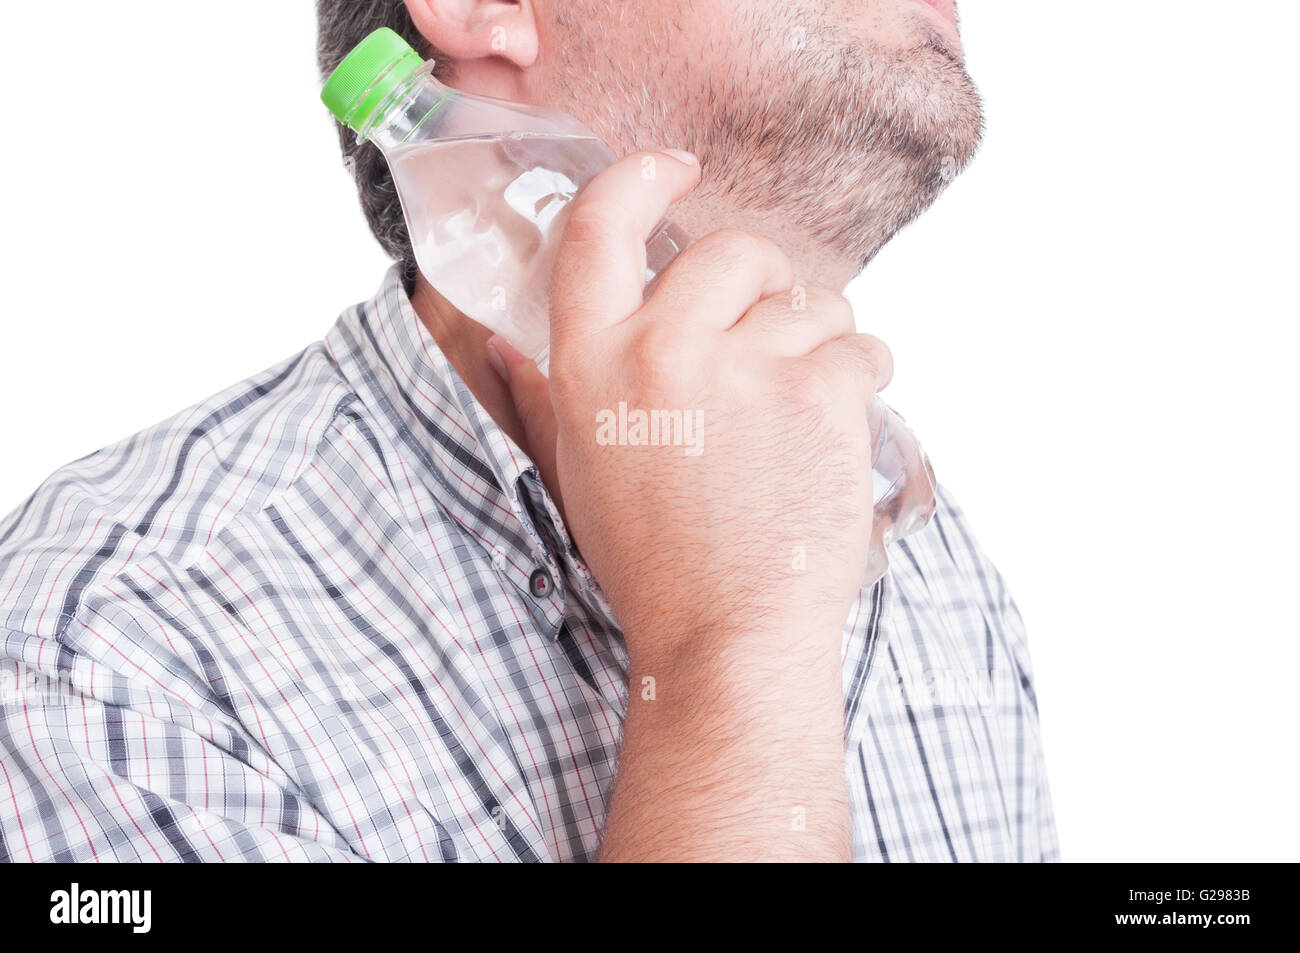 Man cooling his neck with a bottle of cold water as summer heat or heatwave concept - Stock Image